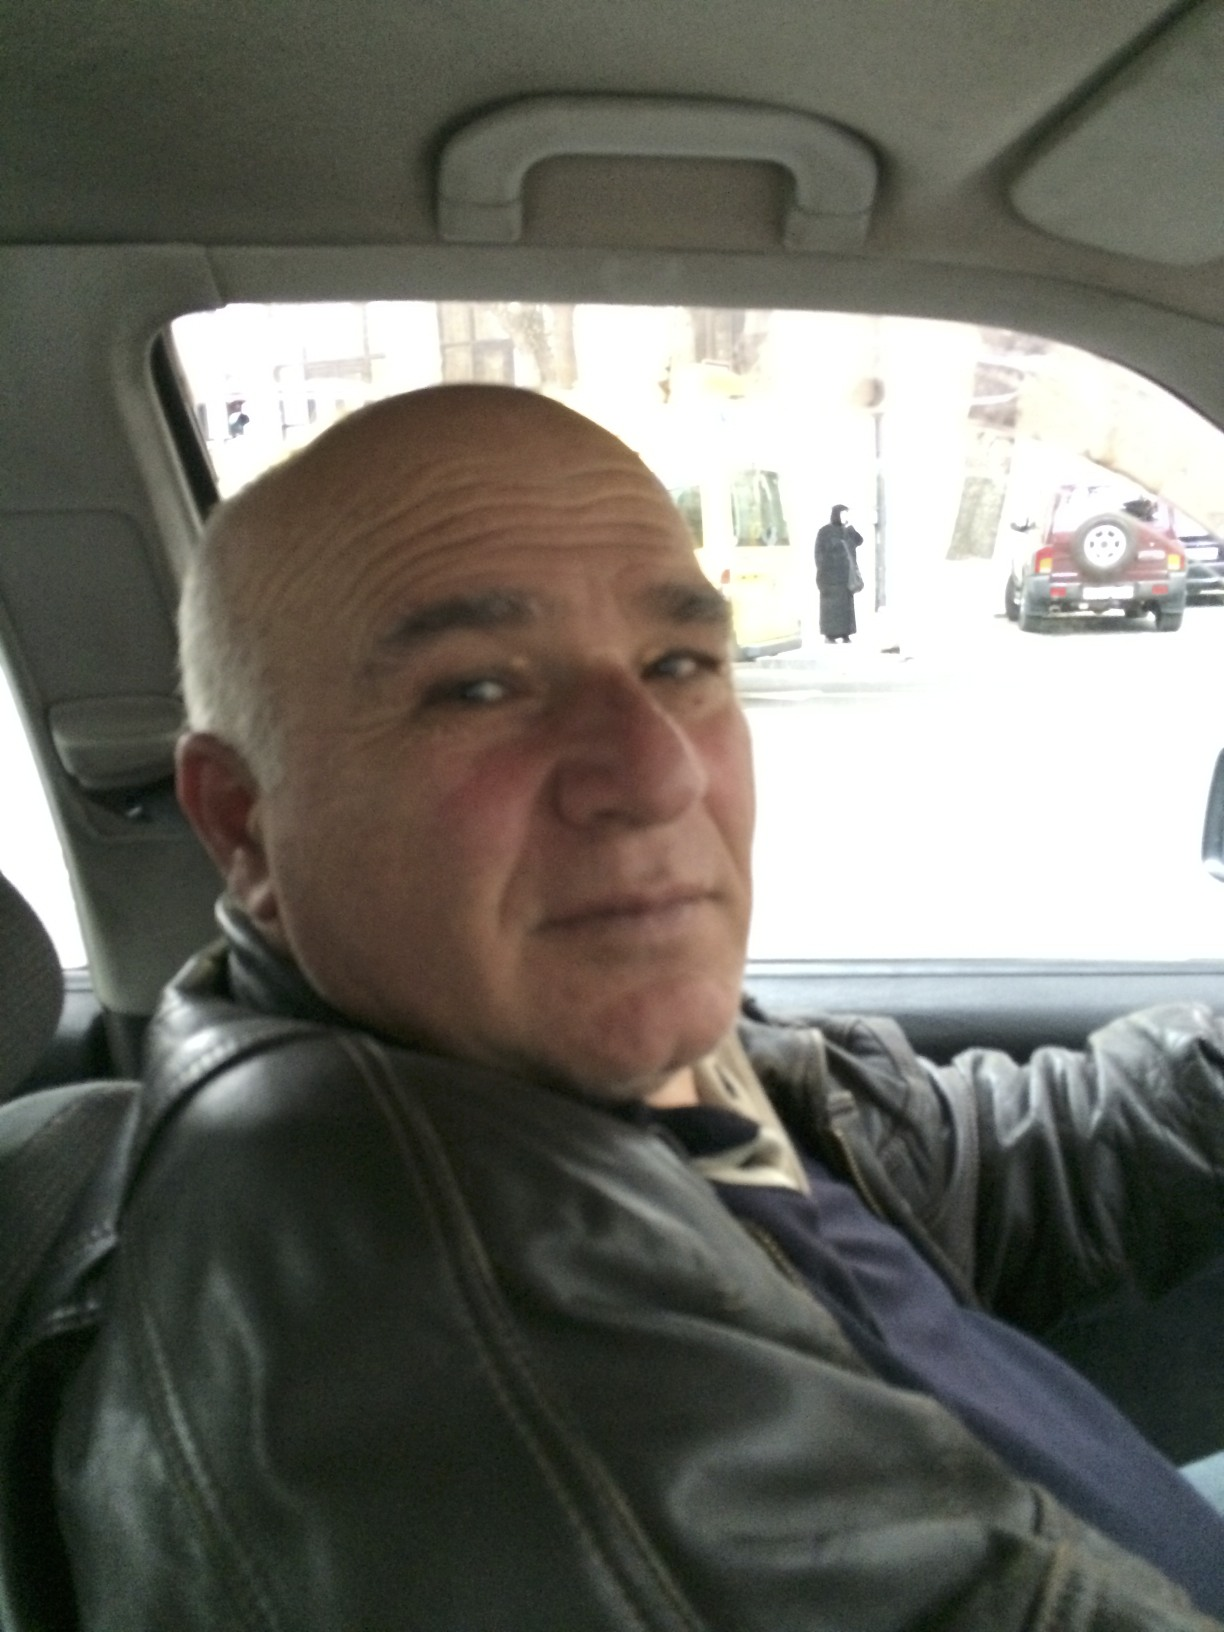 One of my typical Georgian taxi drivers